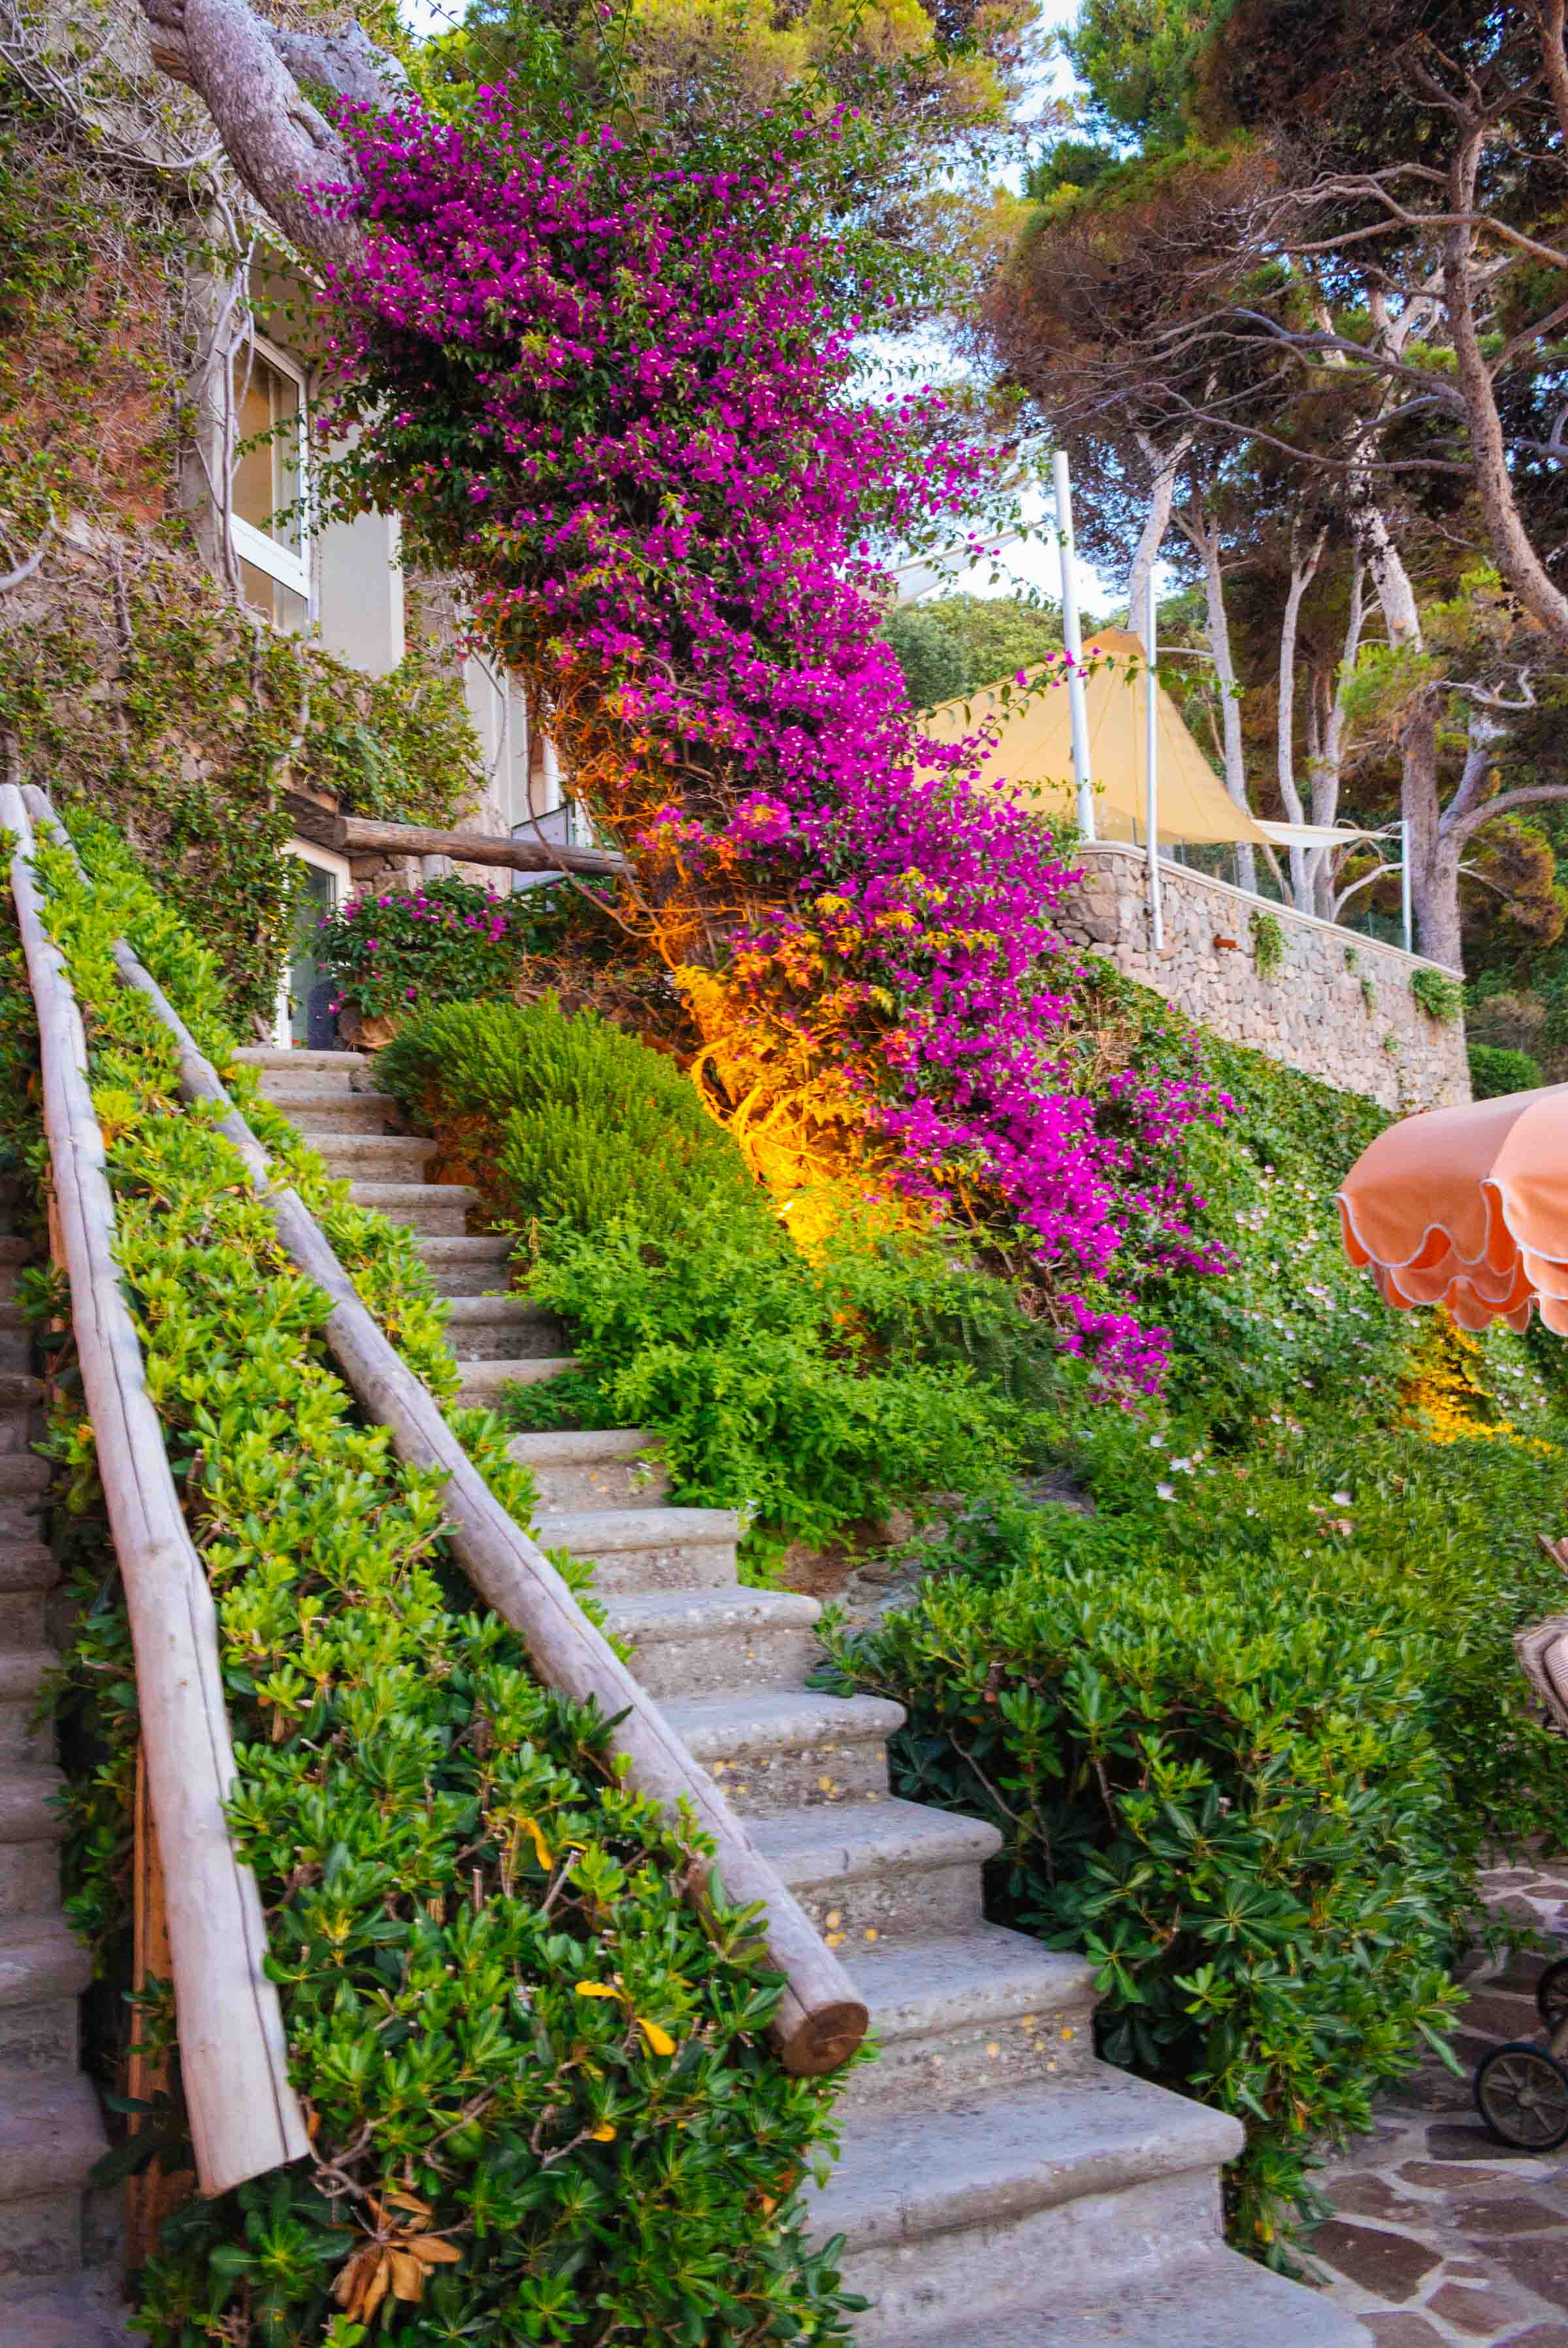 Beautiful bougainvilleas at the best hotel in Ischia the Mezzatorre Thermal Spa, Photo by The Taste SF and Sarah Stanfield